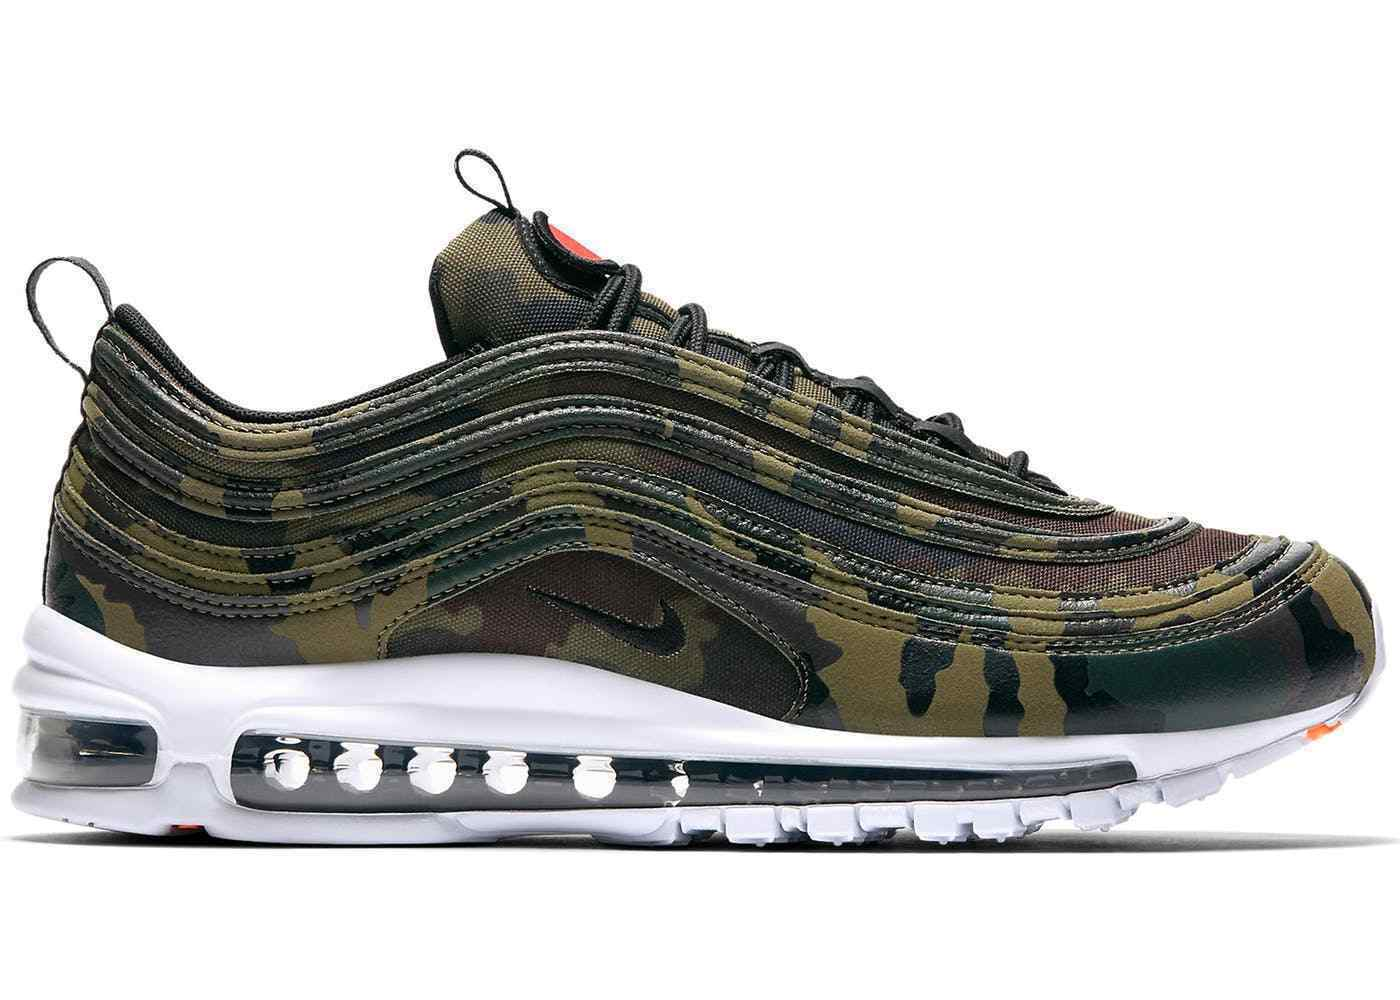 New New New Nike Air Max 97 Premium QS France Camo Pack Olive Black Size 9.5 AJ2614 200 f3fe35